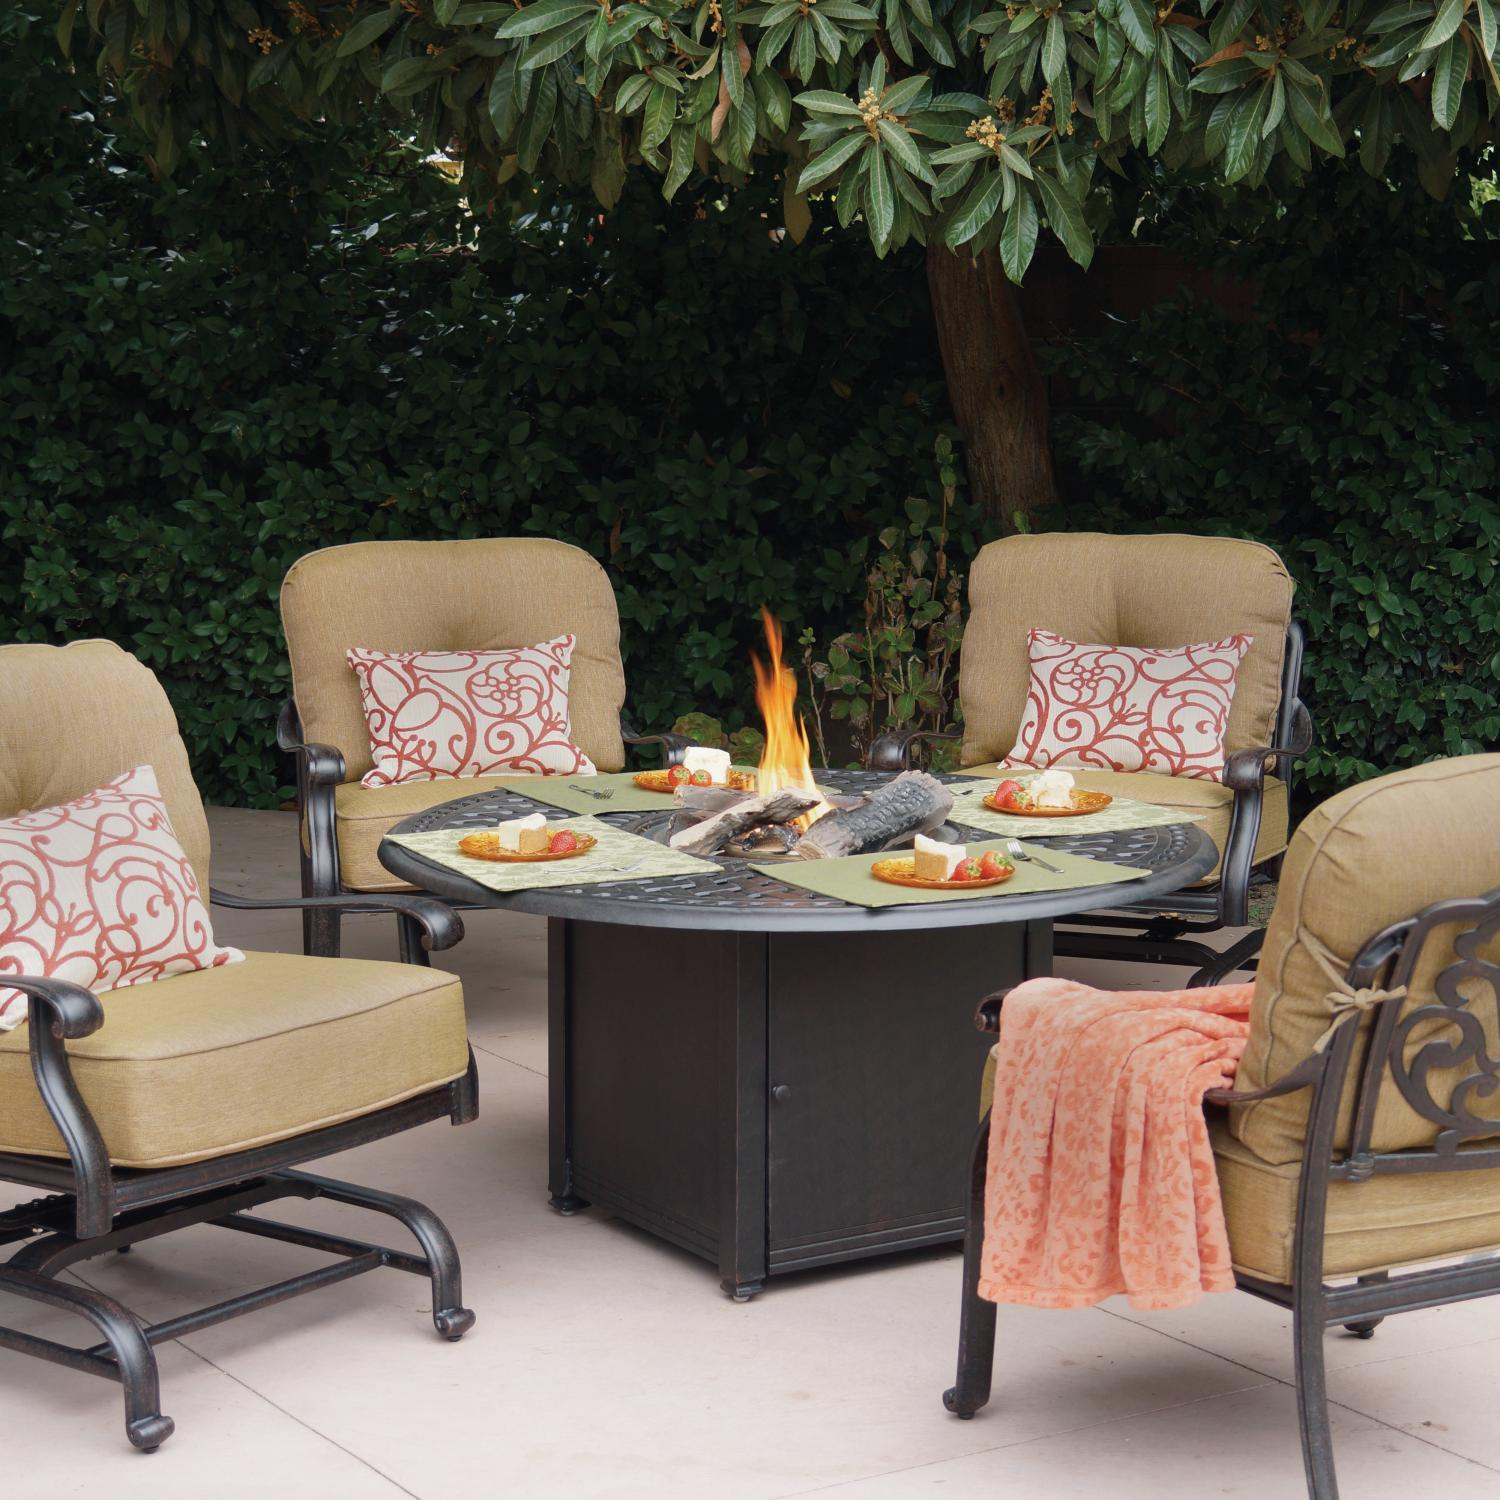 patio fire pit Design and Ideas